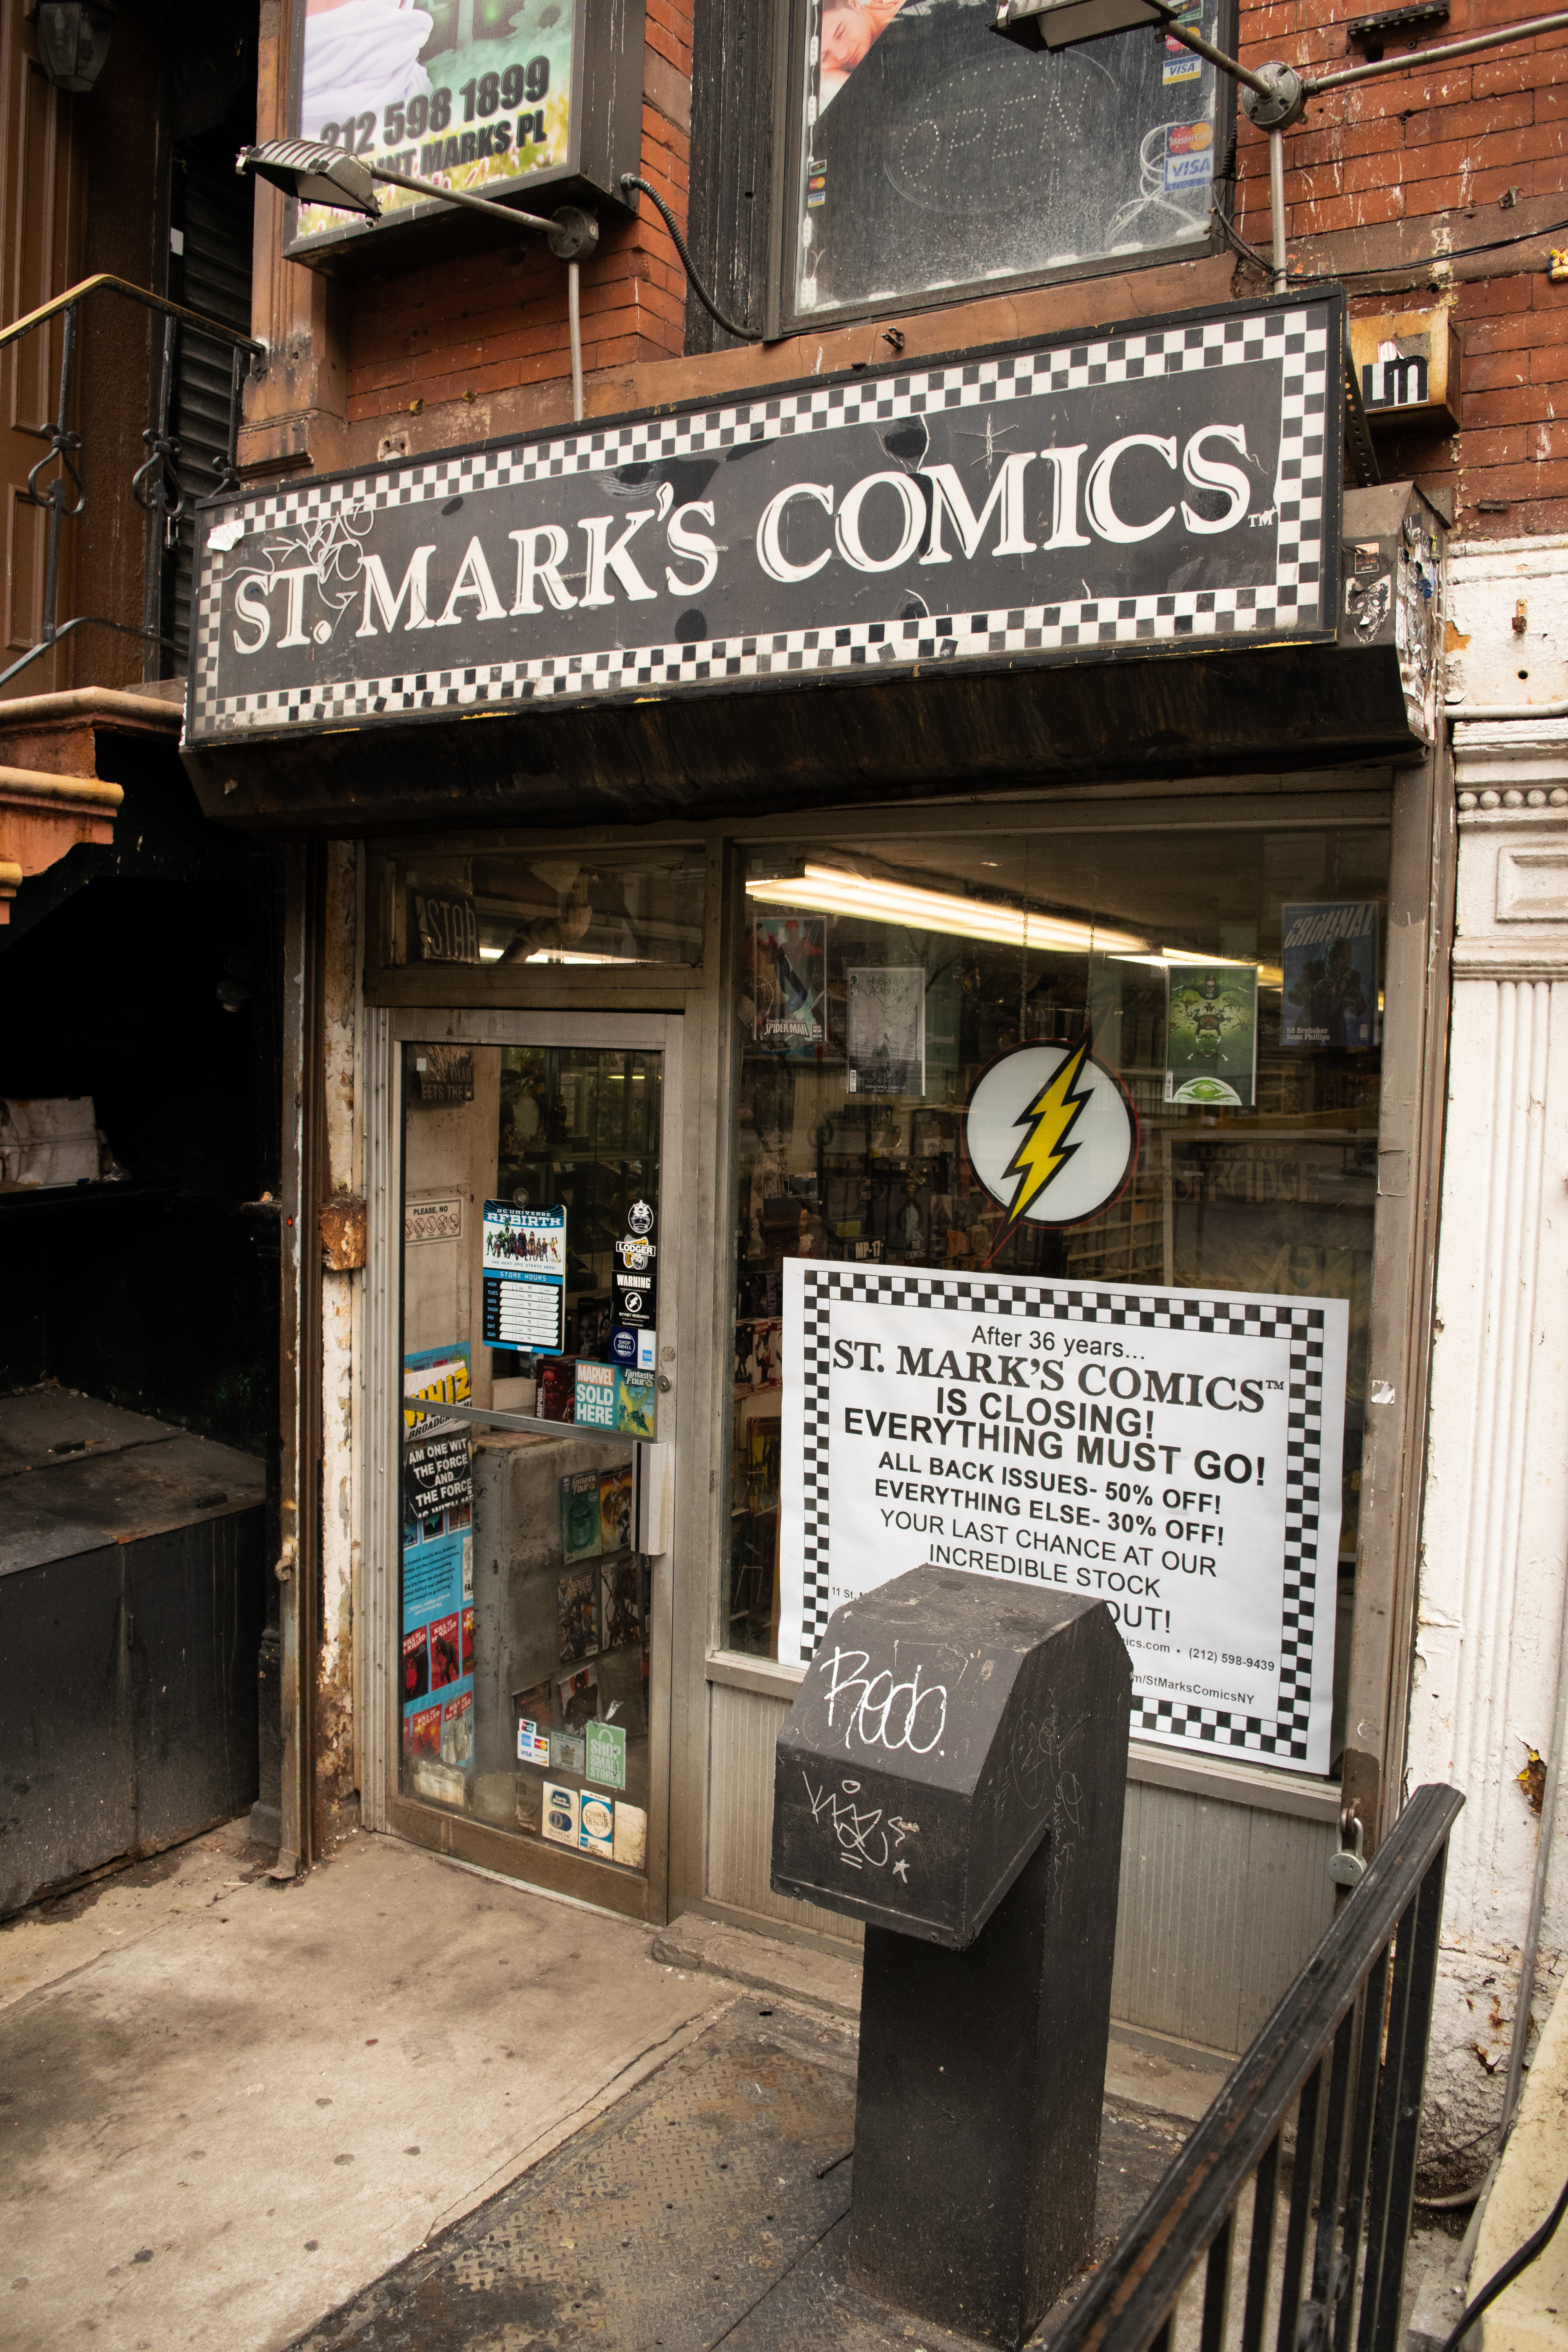 20190207 dsc 0026 St. Mark's Comics Felled by Rising Rents, but Real Kryptonite Is Catering to Diehards